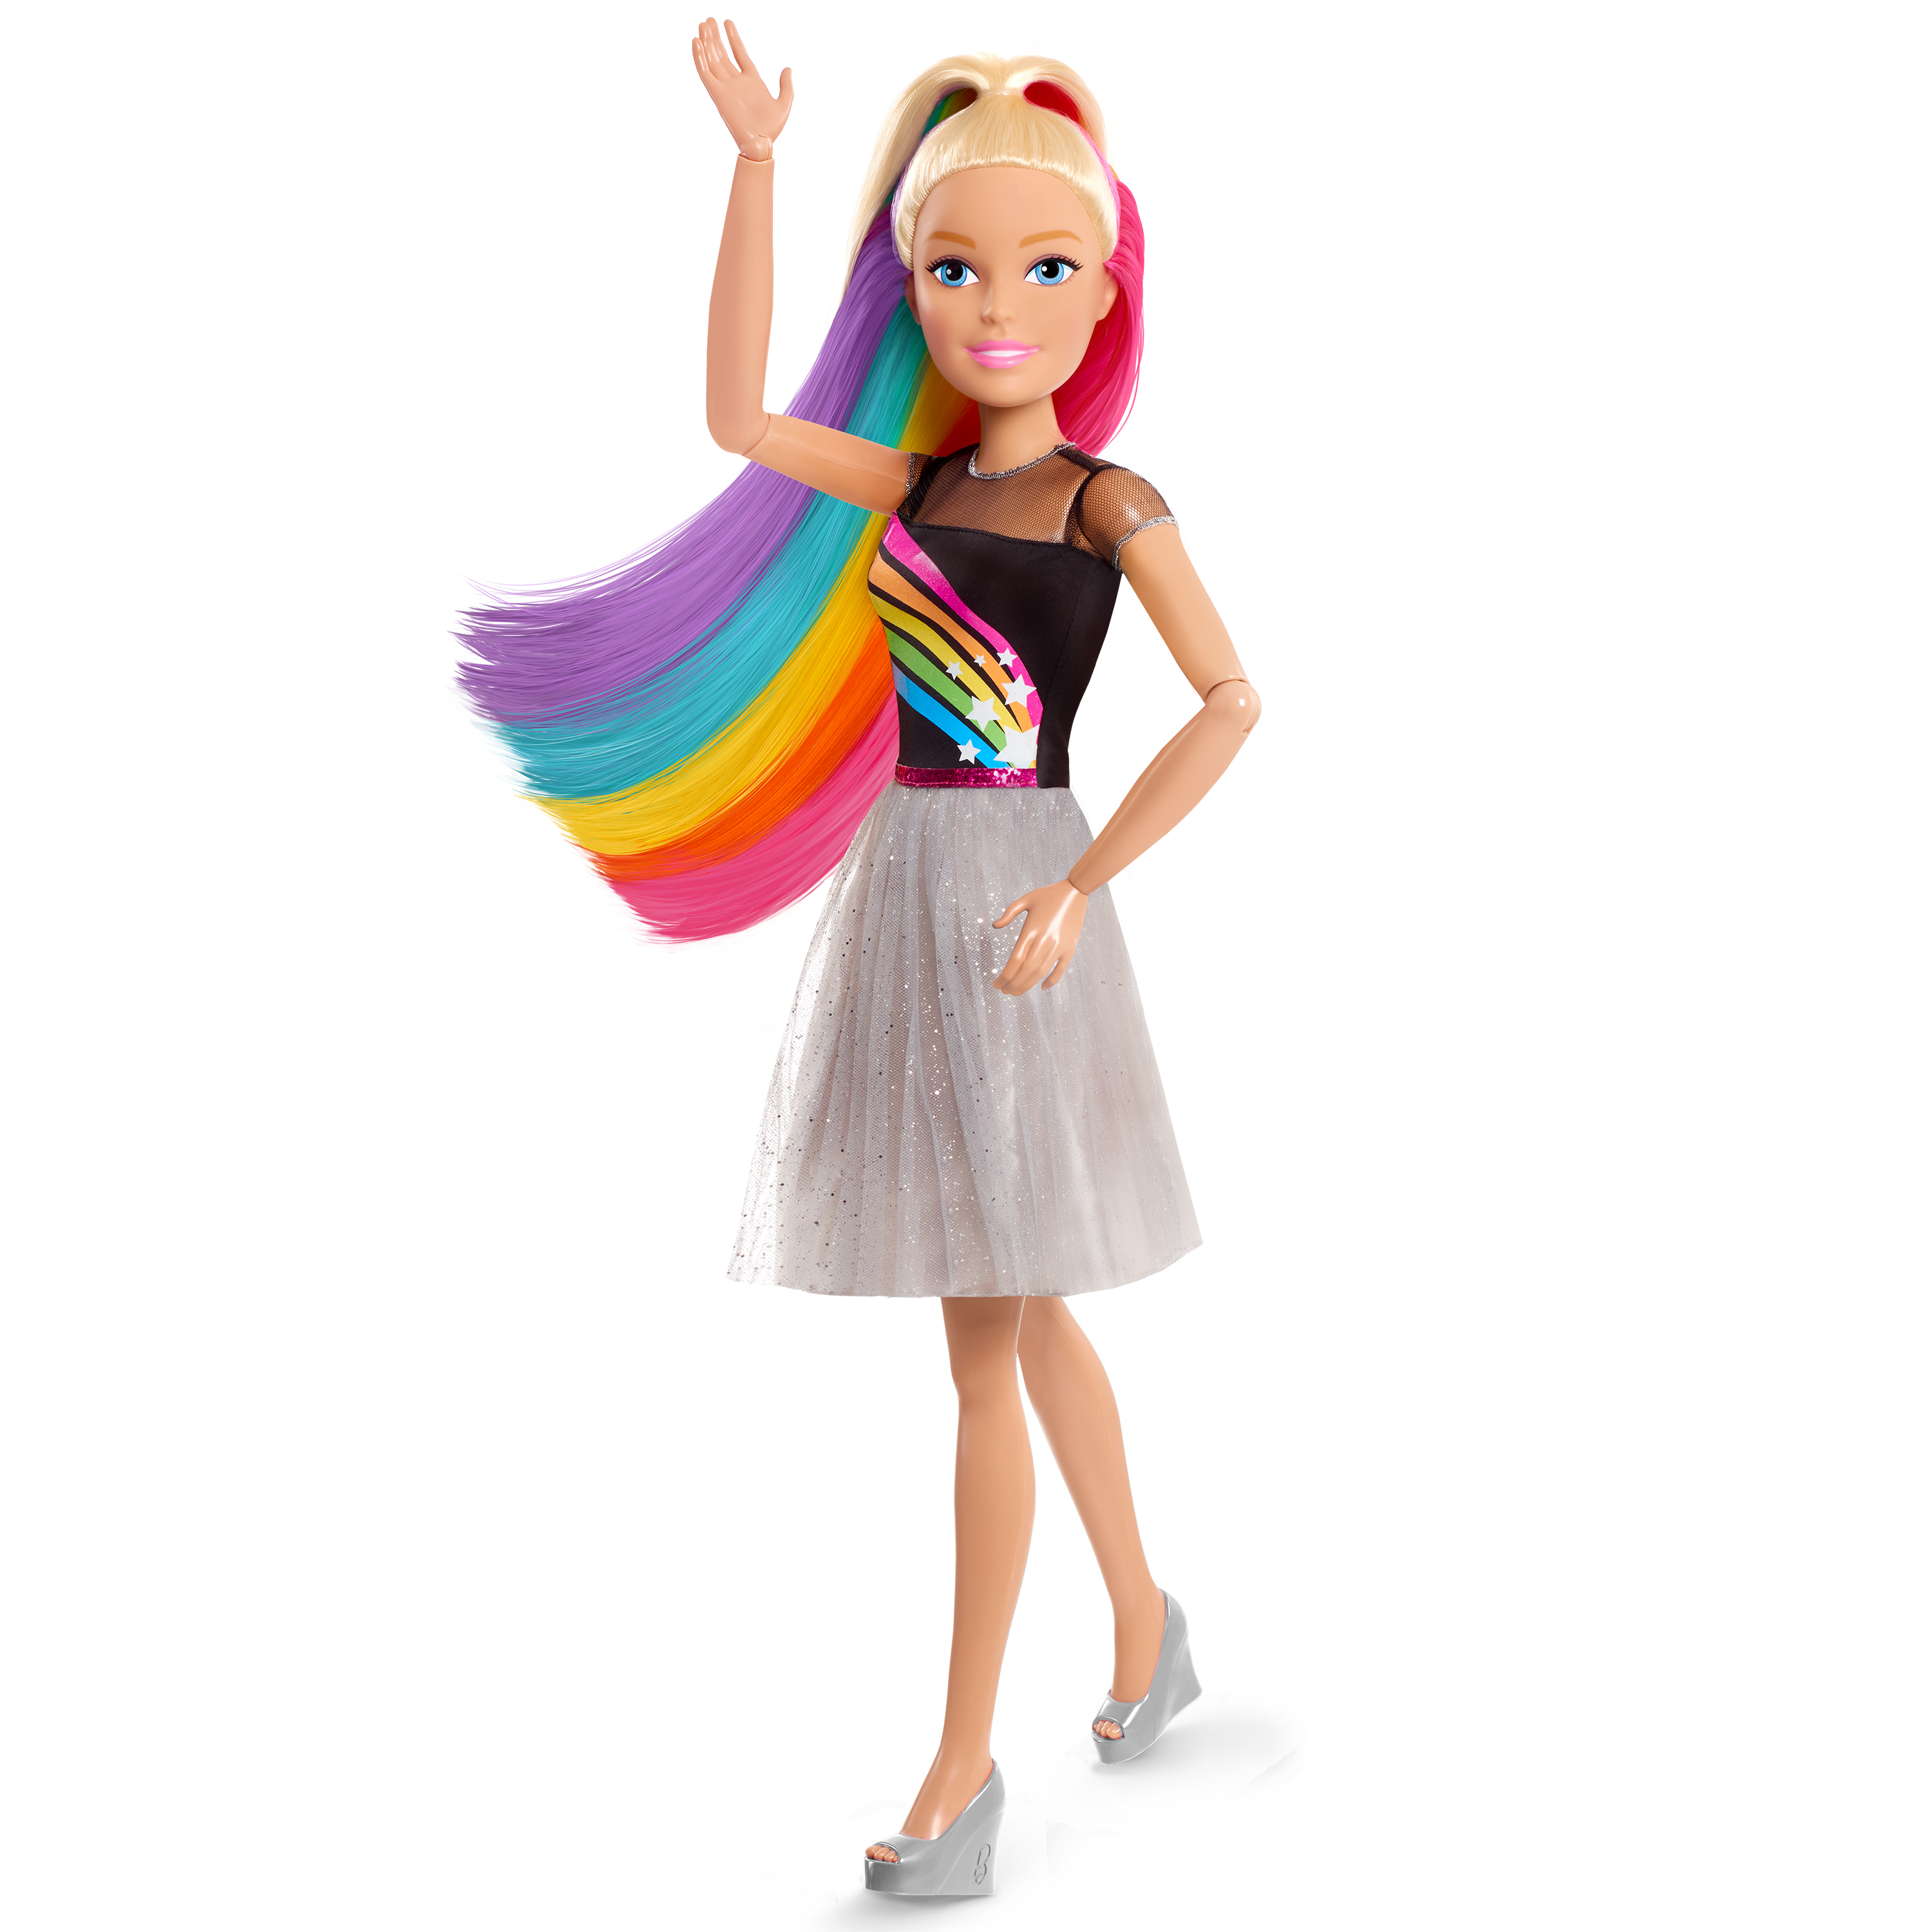 Awesome Rainbow Sparkle Hair Barbie Target wallpapers to download for free greenvirals